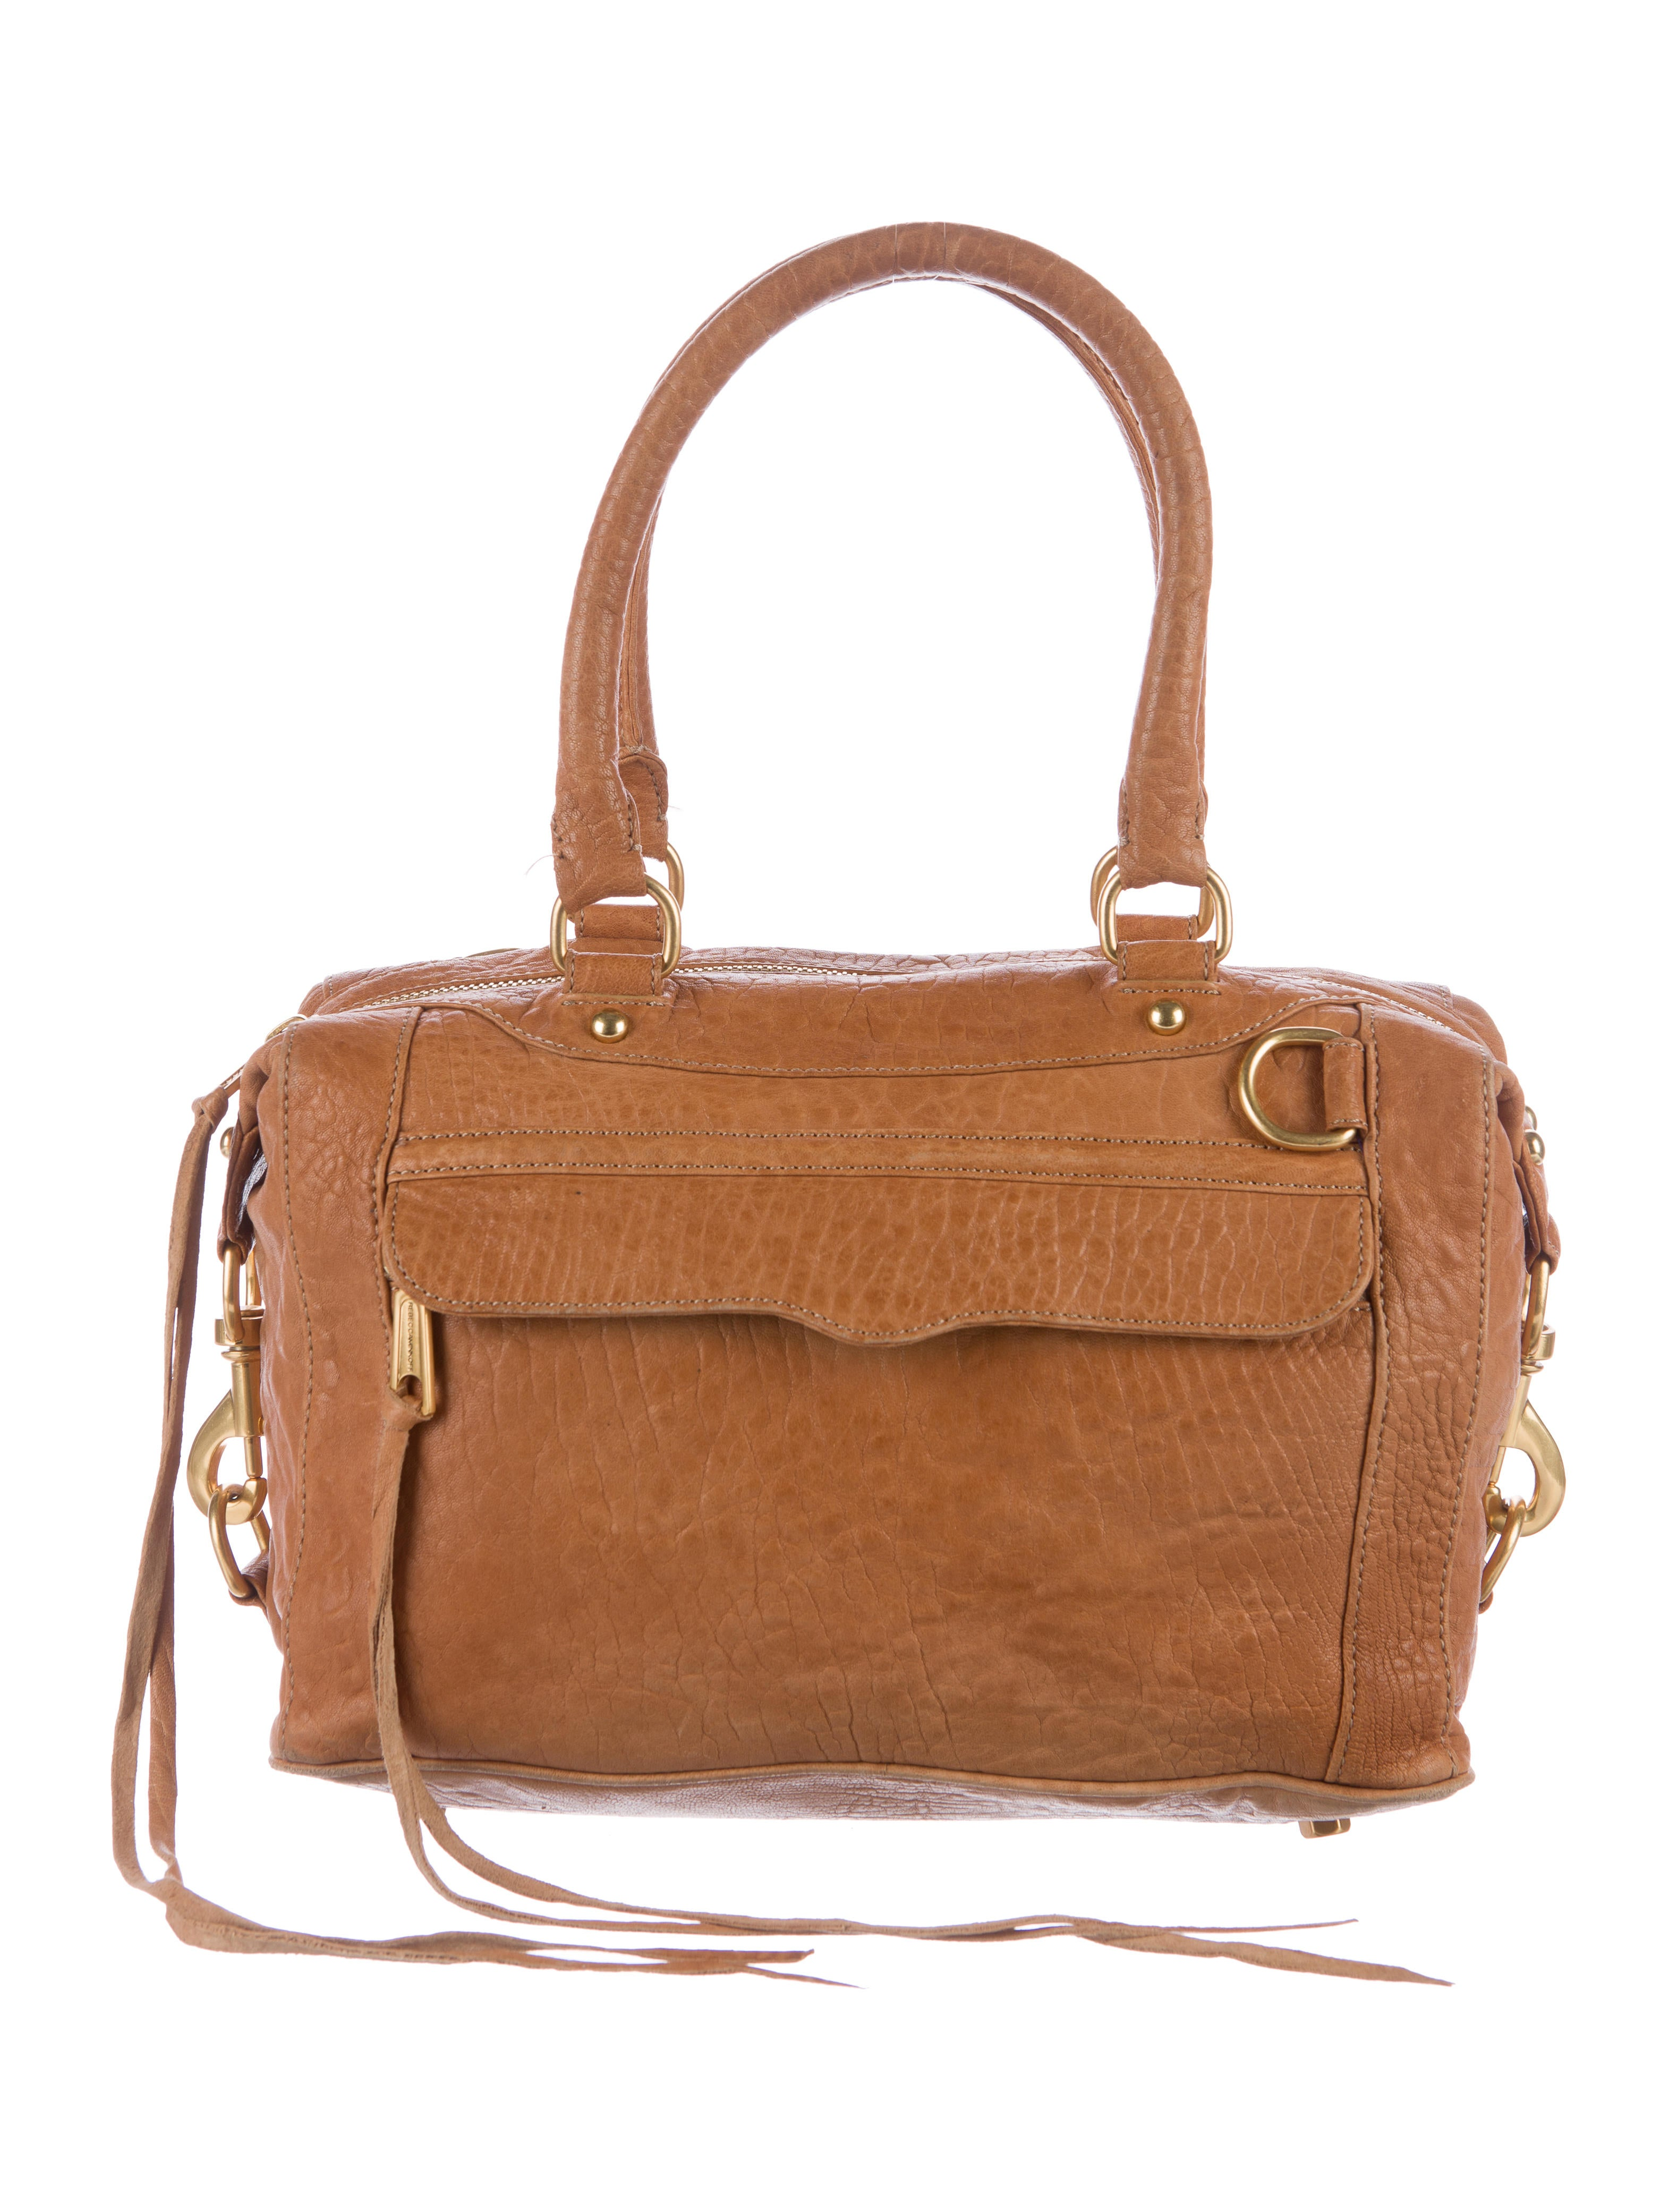 A Rebecca Minkoff Outlet can be an ideal choice for you. A Rebecca Minkoff outlet is a fire sale of old collections. These are unsold goods from previous seasons or years. Rebecca Minkoff outlet has brand new, not worn products, which you can get in outlets at a fraction of its original price.